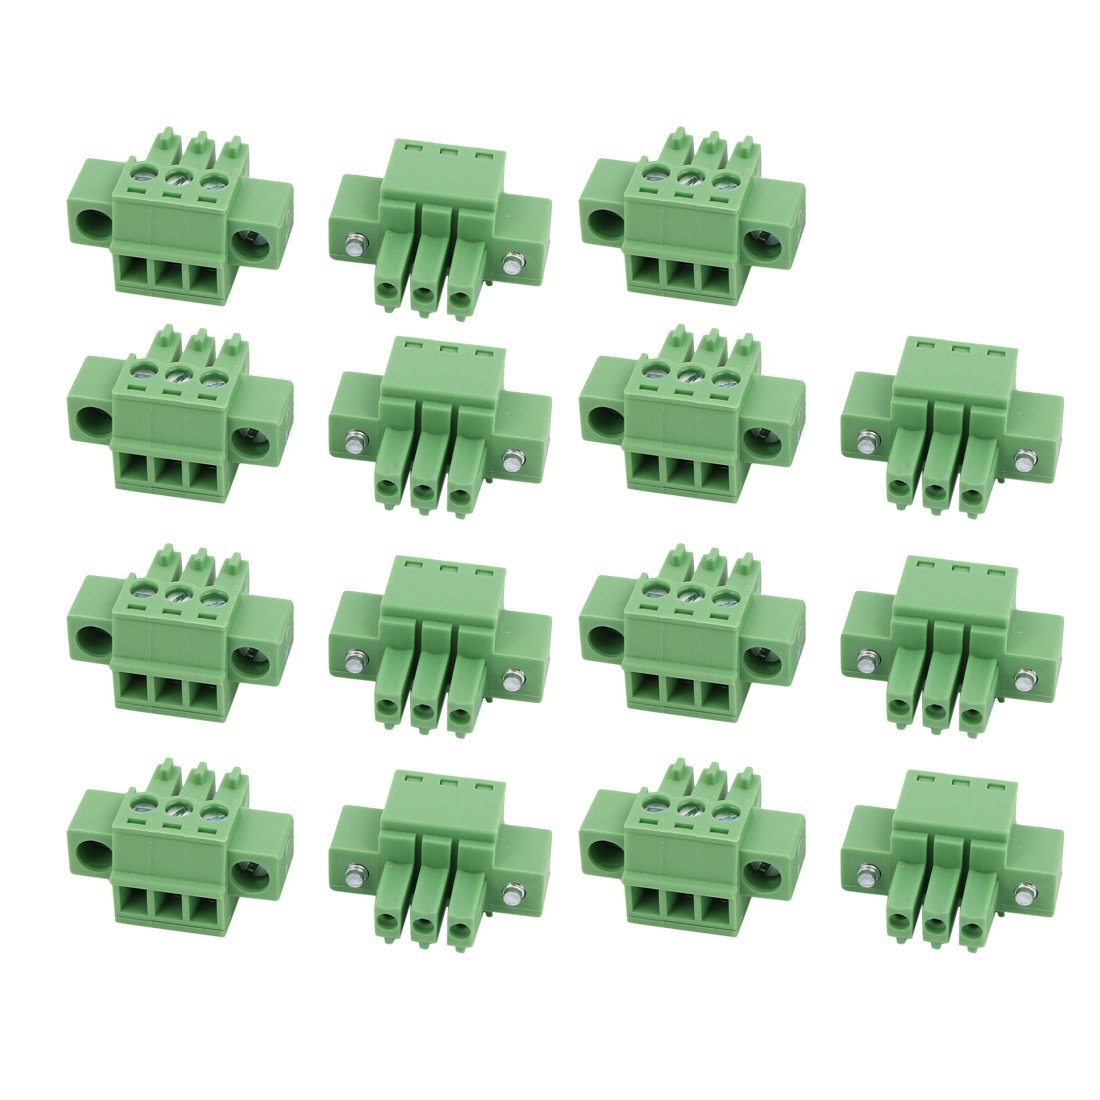 uxcell 15Pcs LC1M AC300V 8A 3.5mm Pitch 3P PCB Terminal Block Wire Connection